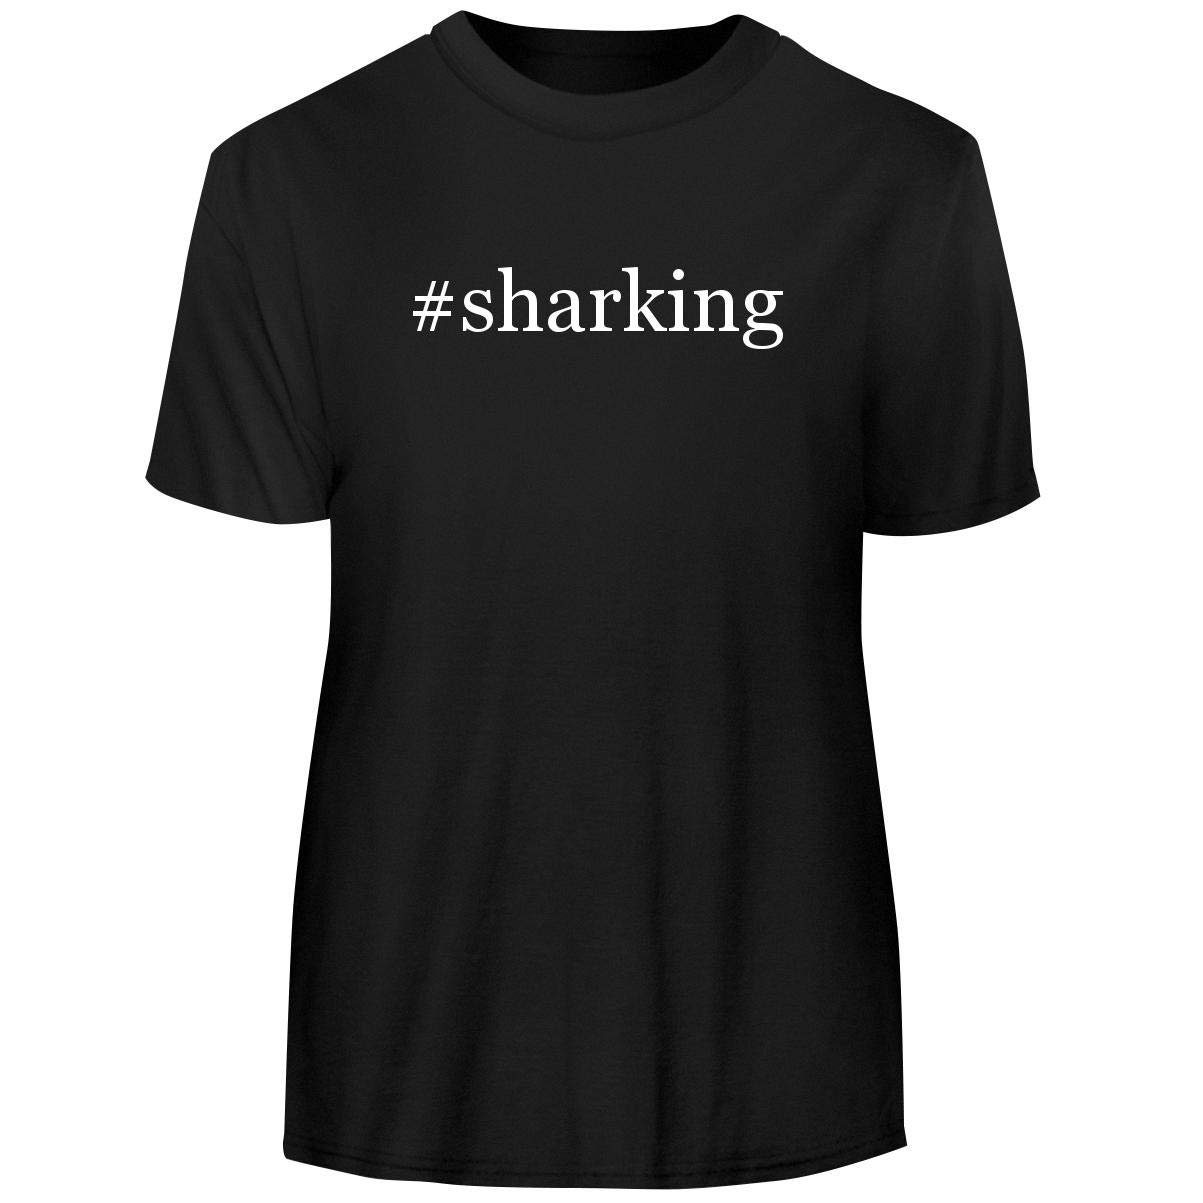 One Legging it Around #Sharking - Hashtag Men's Funny Soft Adult Tee T-Shirt